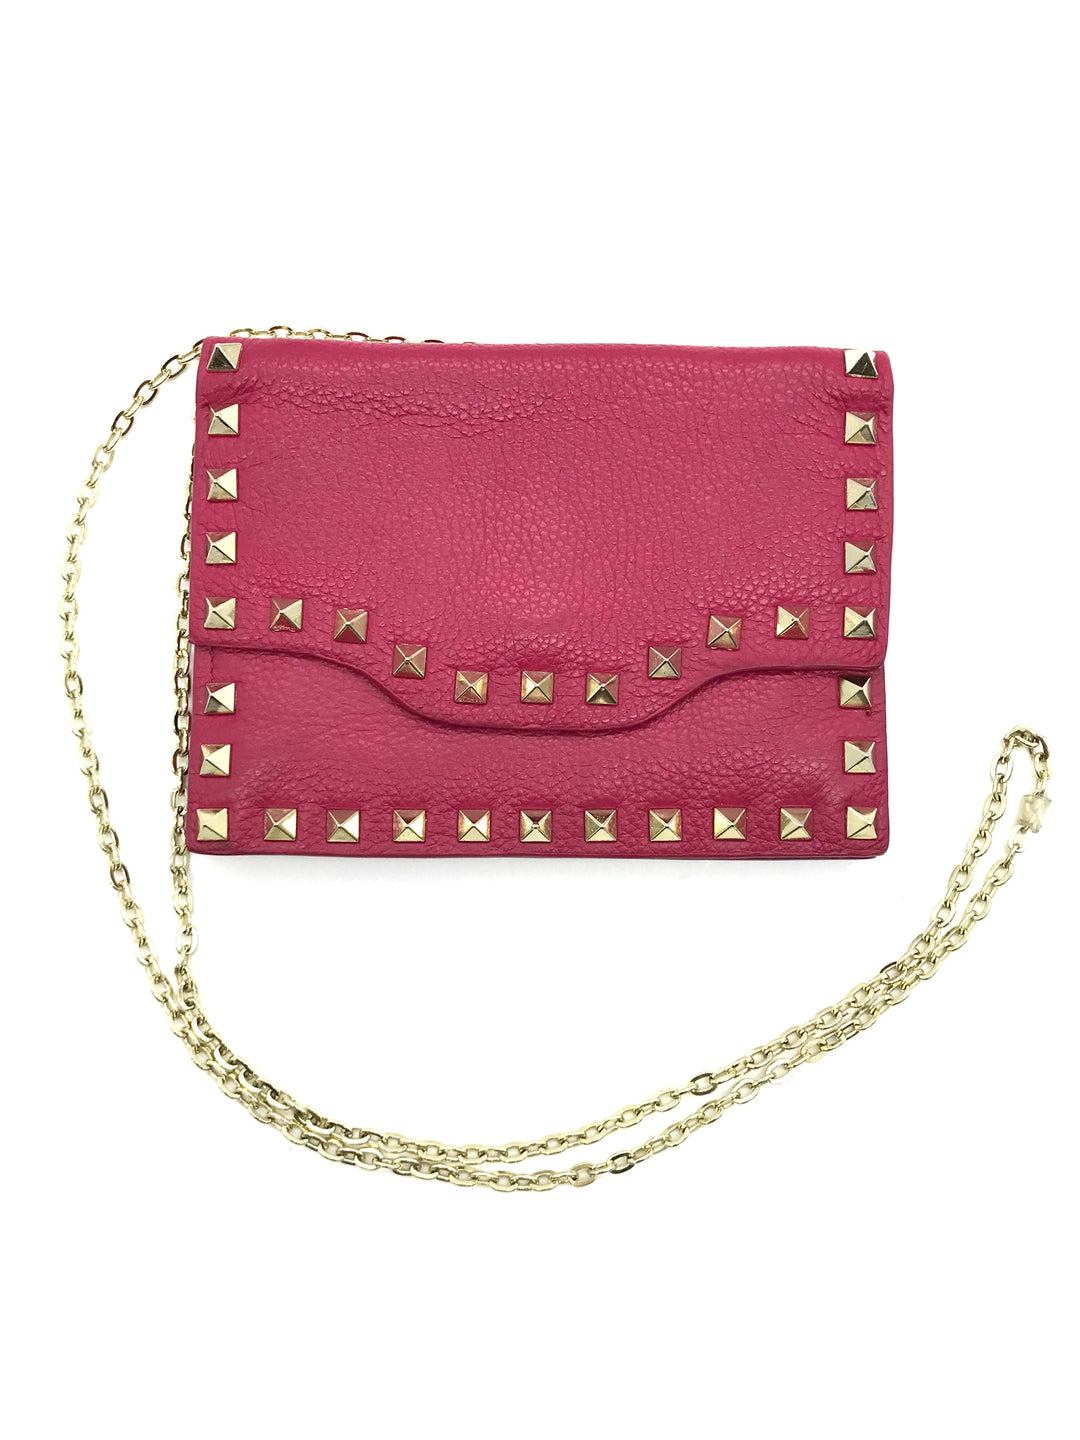 "Primary Photo - BRAND: NEIMAN MARCUS <BR>STYLE: HANDBAG <BR>COLOR: HOT PINK <BR>SIZE: SMALL <BR>SKU: 262-26241-43692<BR><BR>APPROX. 6.75""L X 5""H. SMALL SIZE, SLIGHT WEAR TO INSIDE OF FLAP. MATERIAL 100% LEATHER"